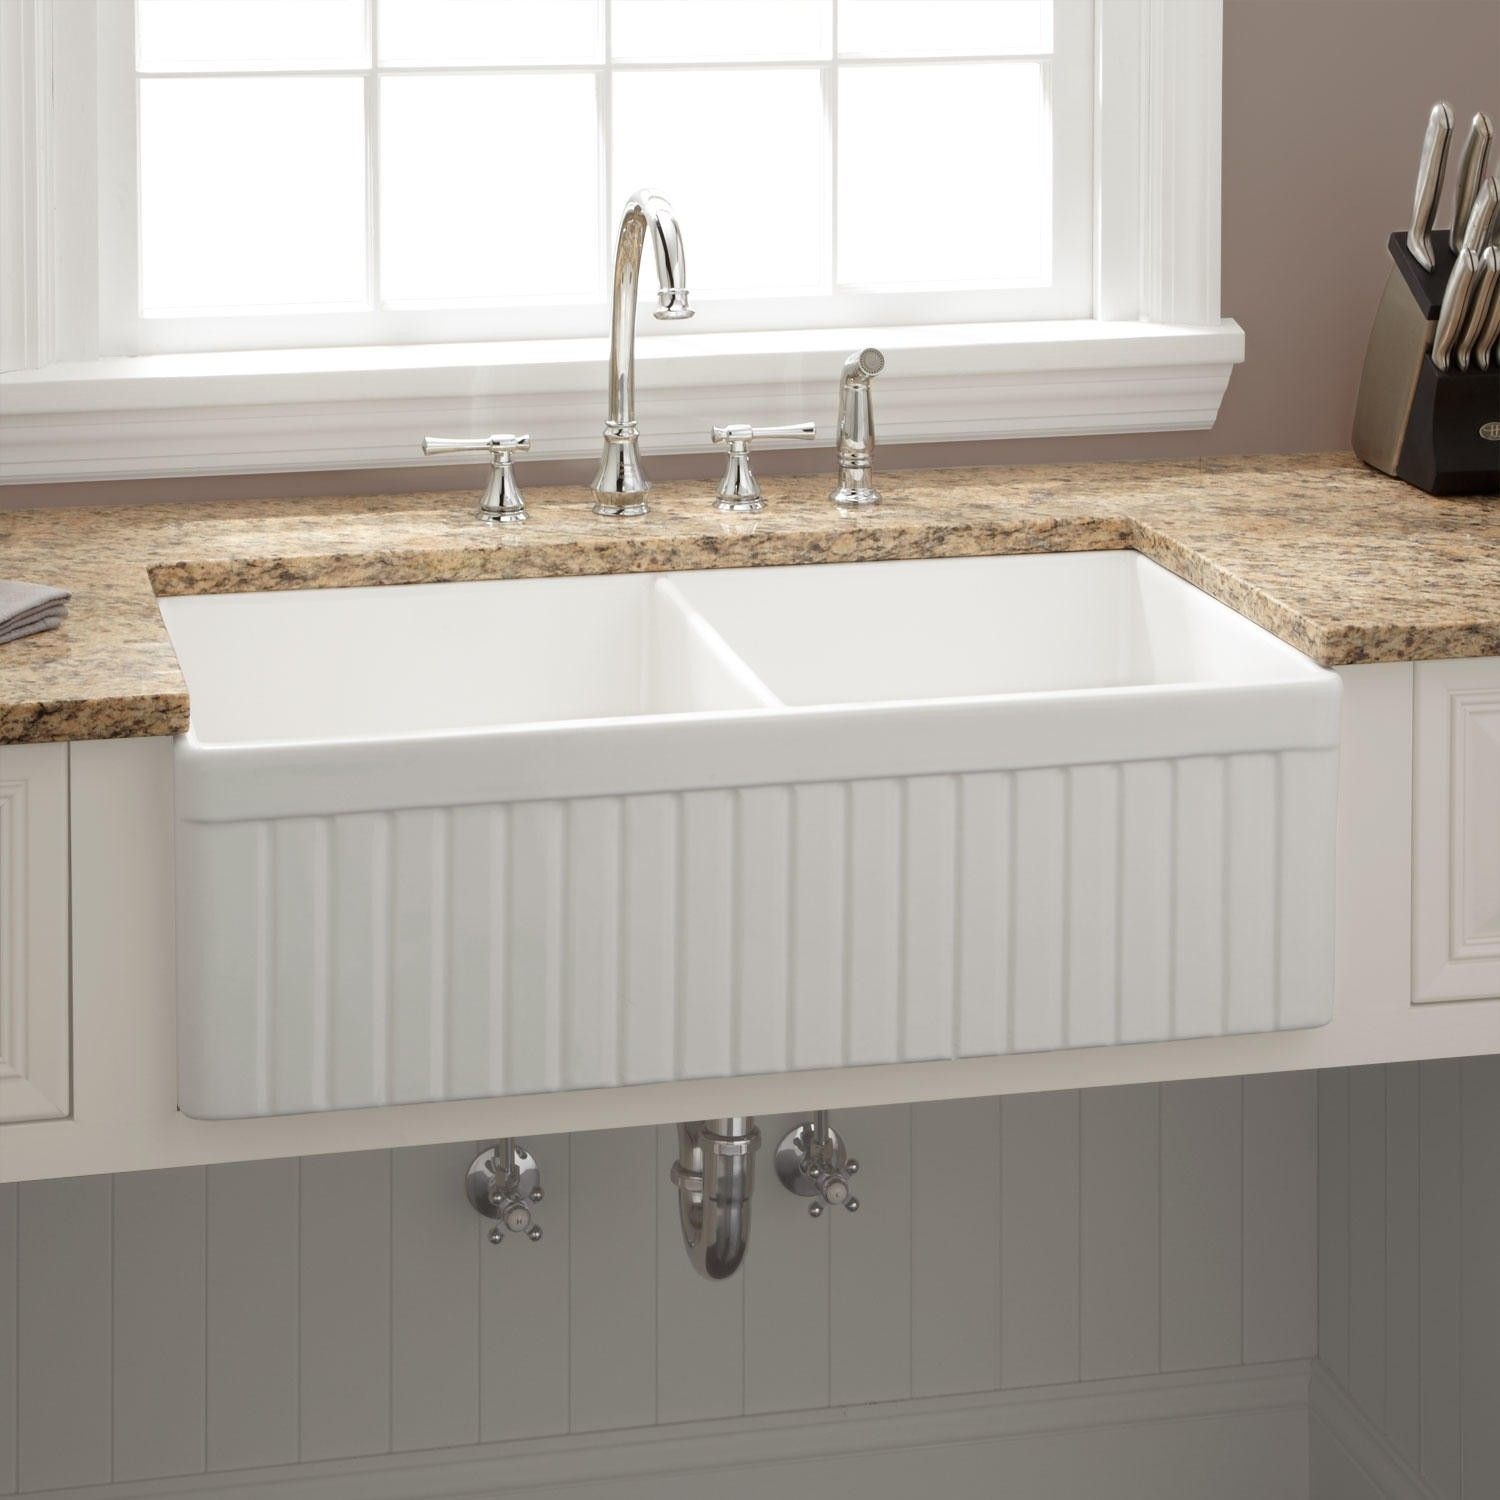 IDEAL SINK 33 Baldwin Double Bowl Fireclay Farmhouse Sink Fl